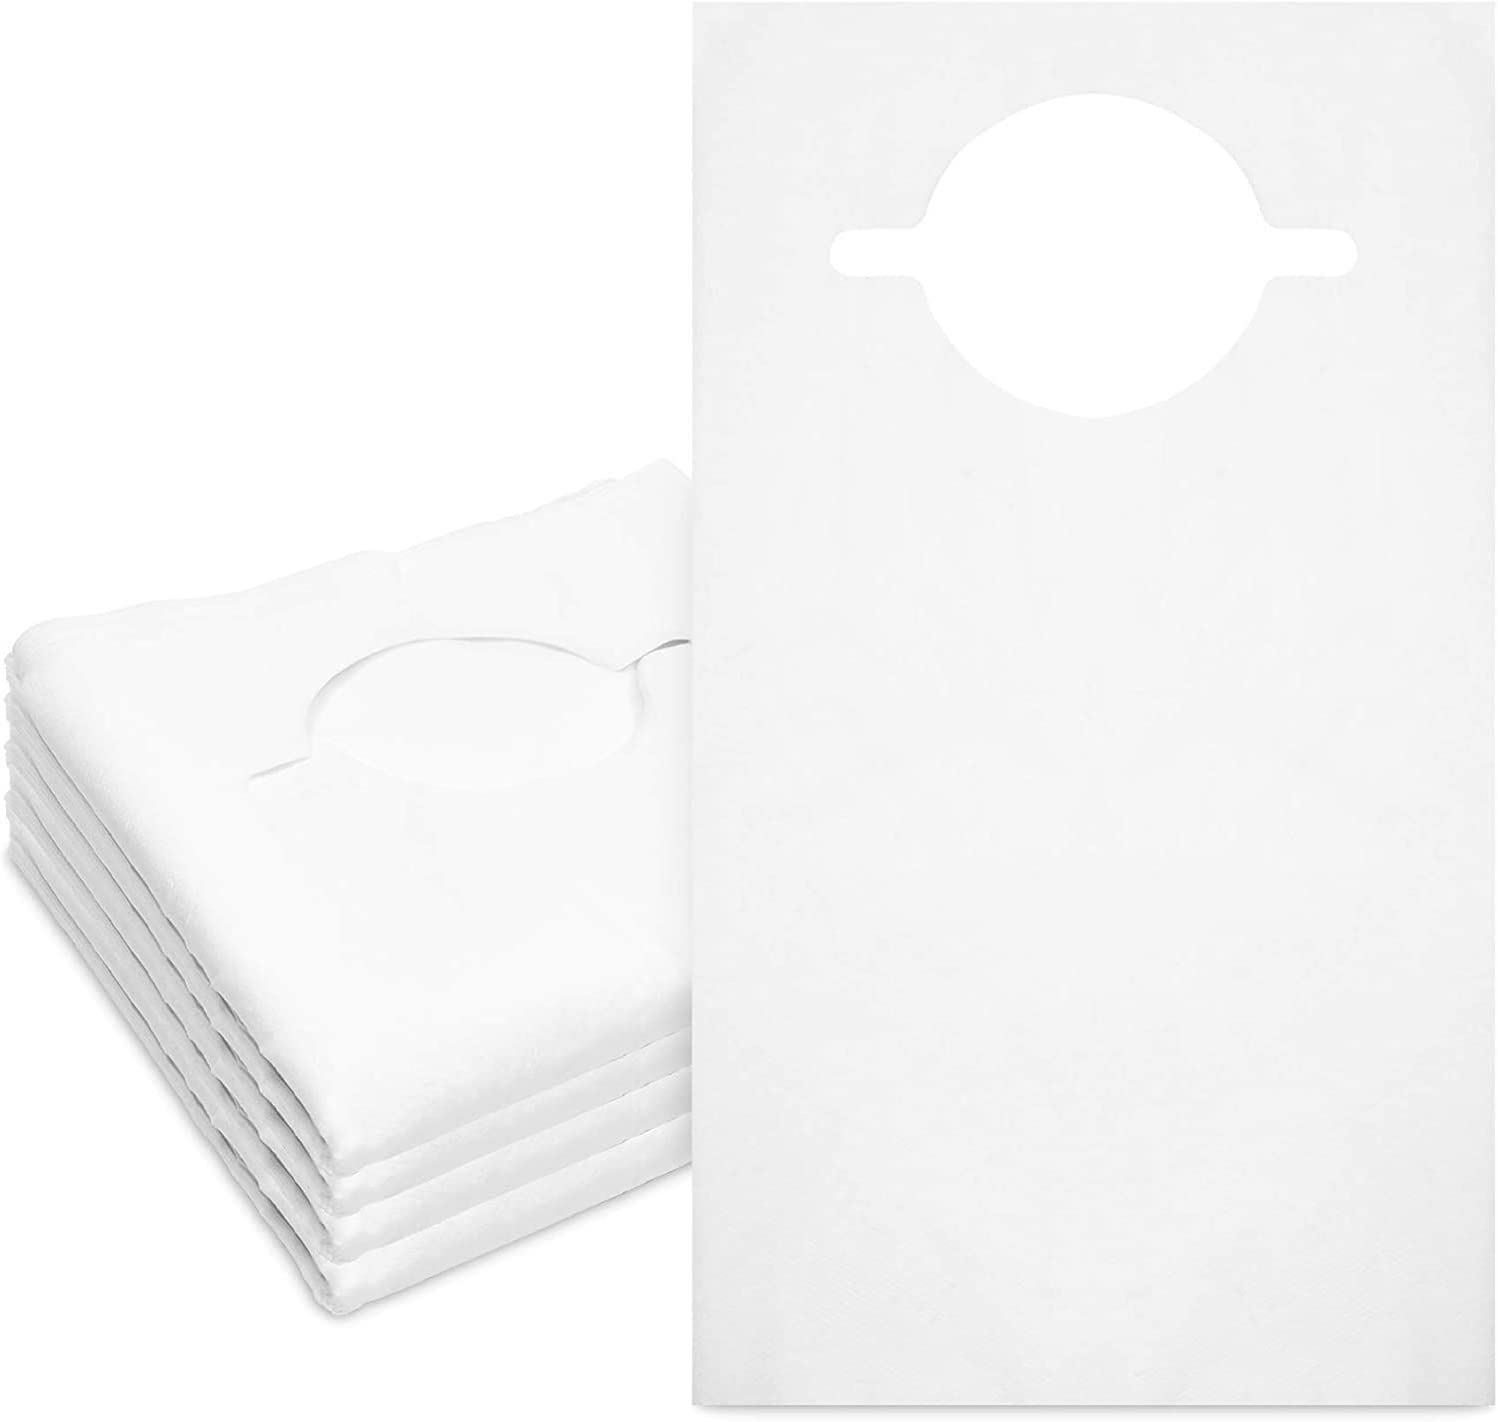 100 Pack Disposable Adult Bibs for Eating, Single-Use Clothing Protectors for Elderly, White